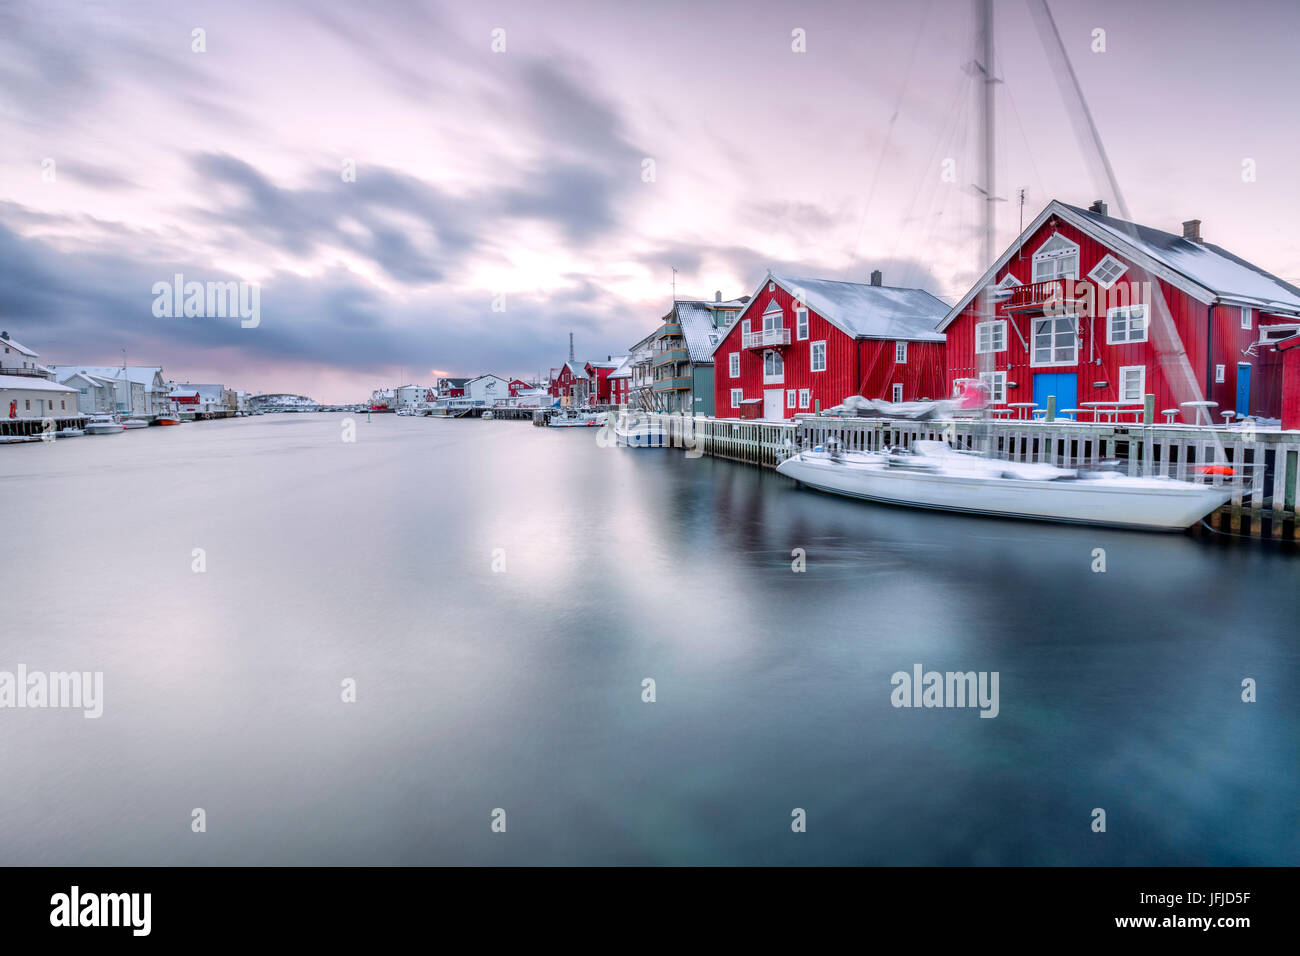 The typical fishing village of Henningsvaer with its red houses called rorbu Lofoten Islands Northern Norway Europe - Stock Image